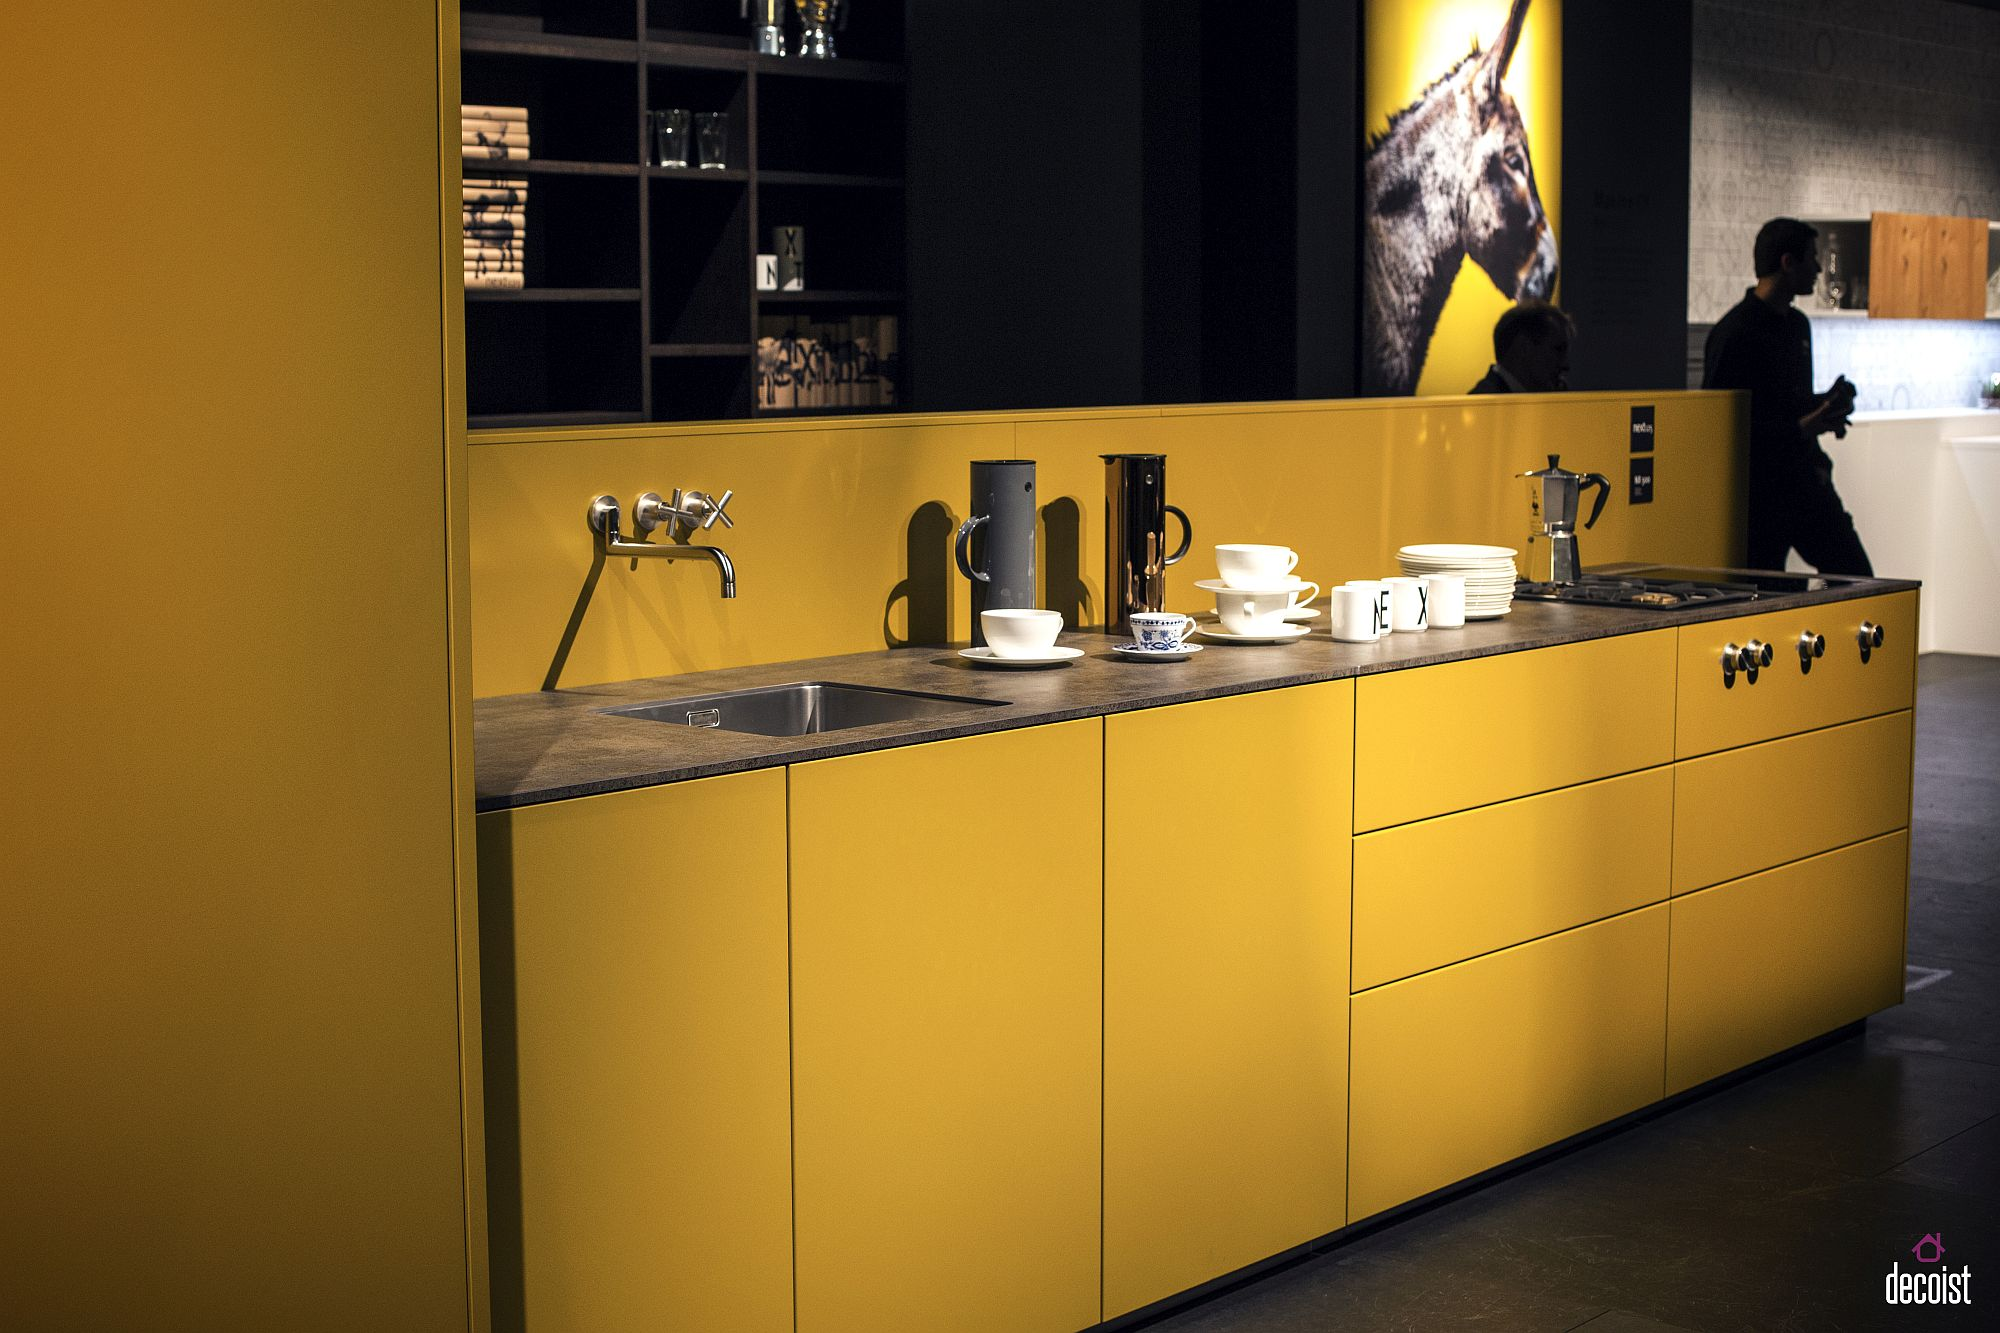 Dashing-kitchen-in-yellow-and-black-with-space-savvy-design